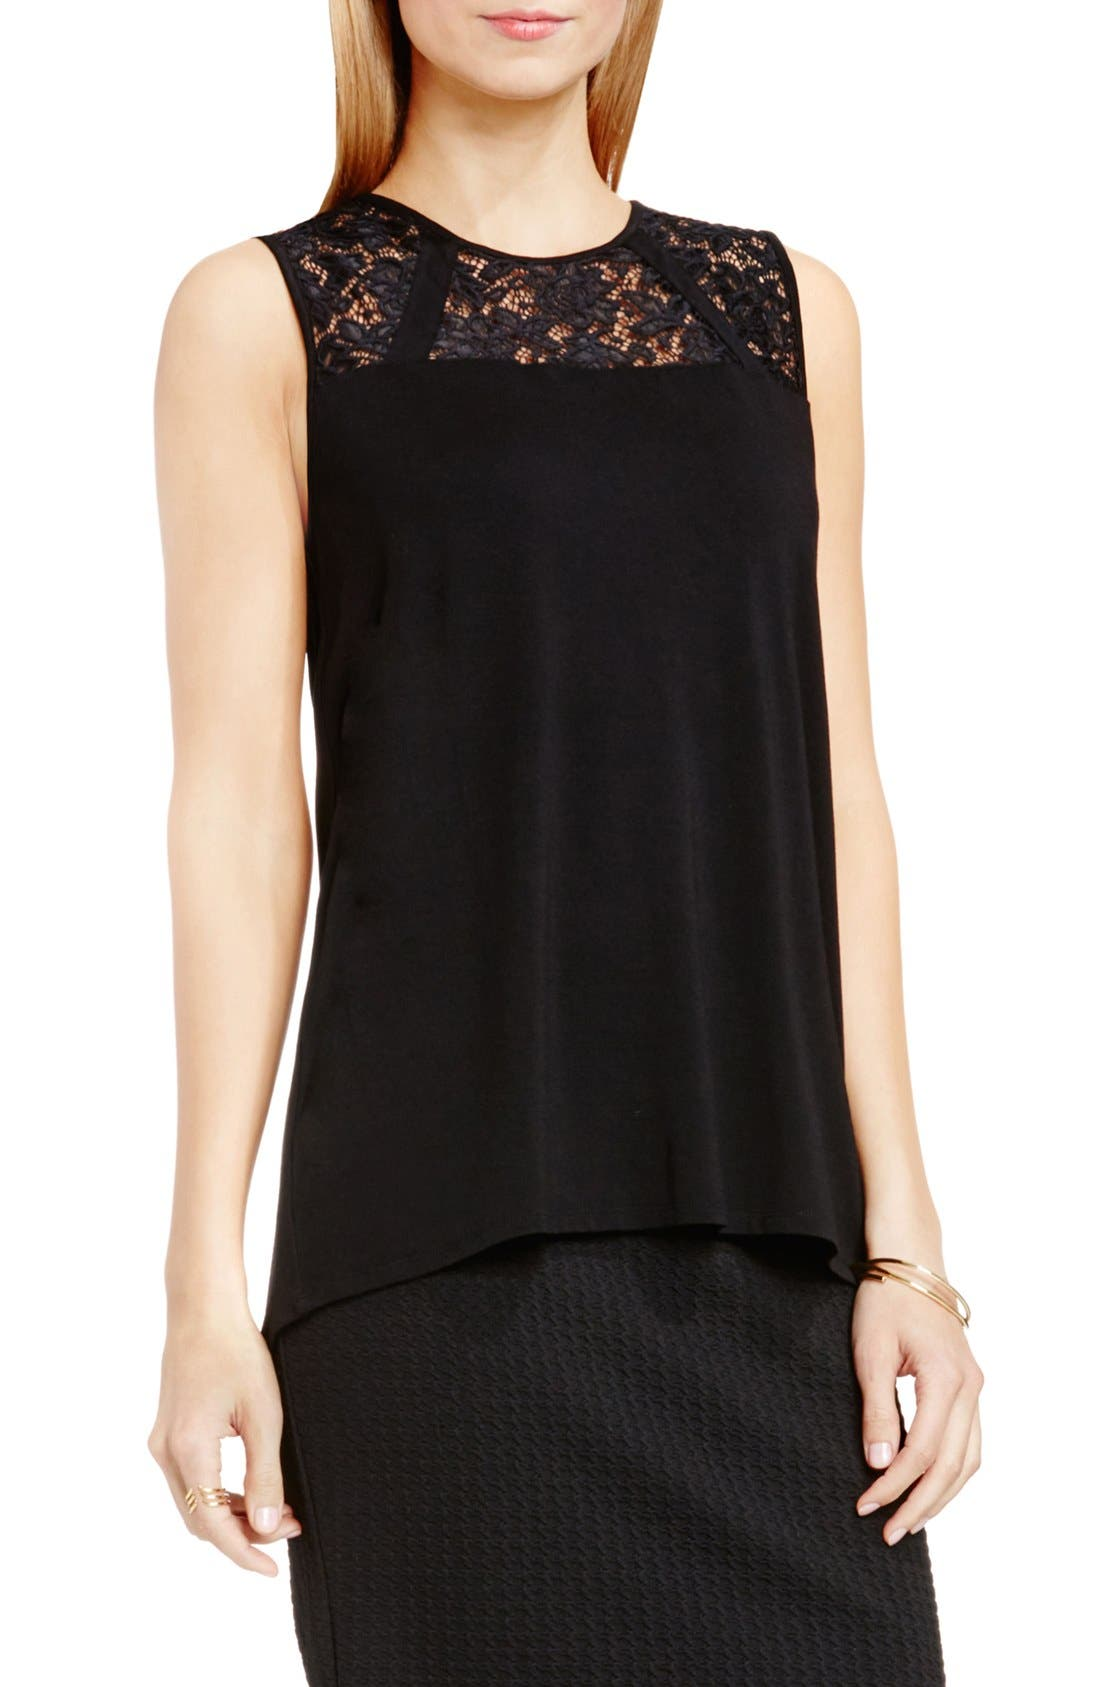 Alternate Image 1 Selected - Vince Camuto Lace Yoke Sleeveless Jersey Top